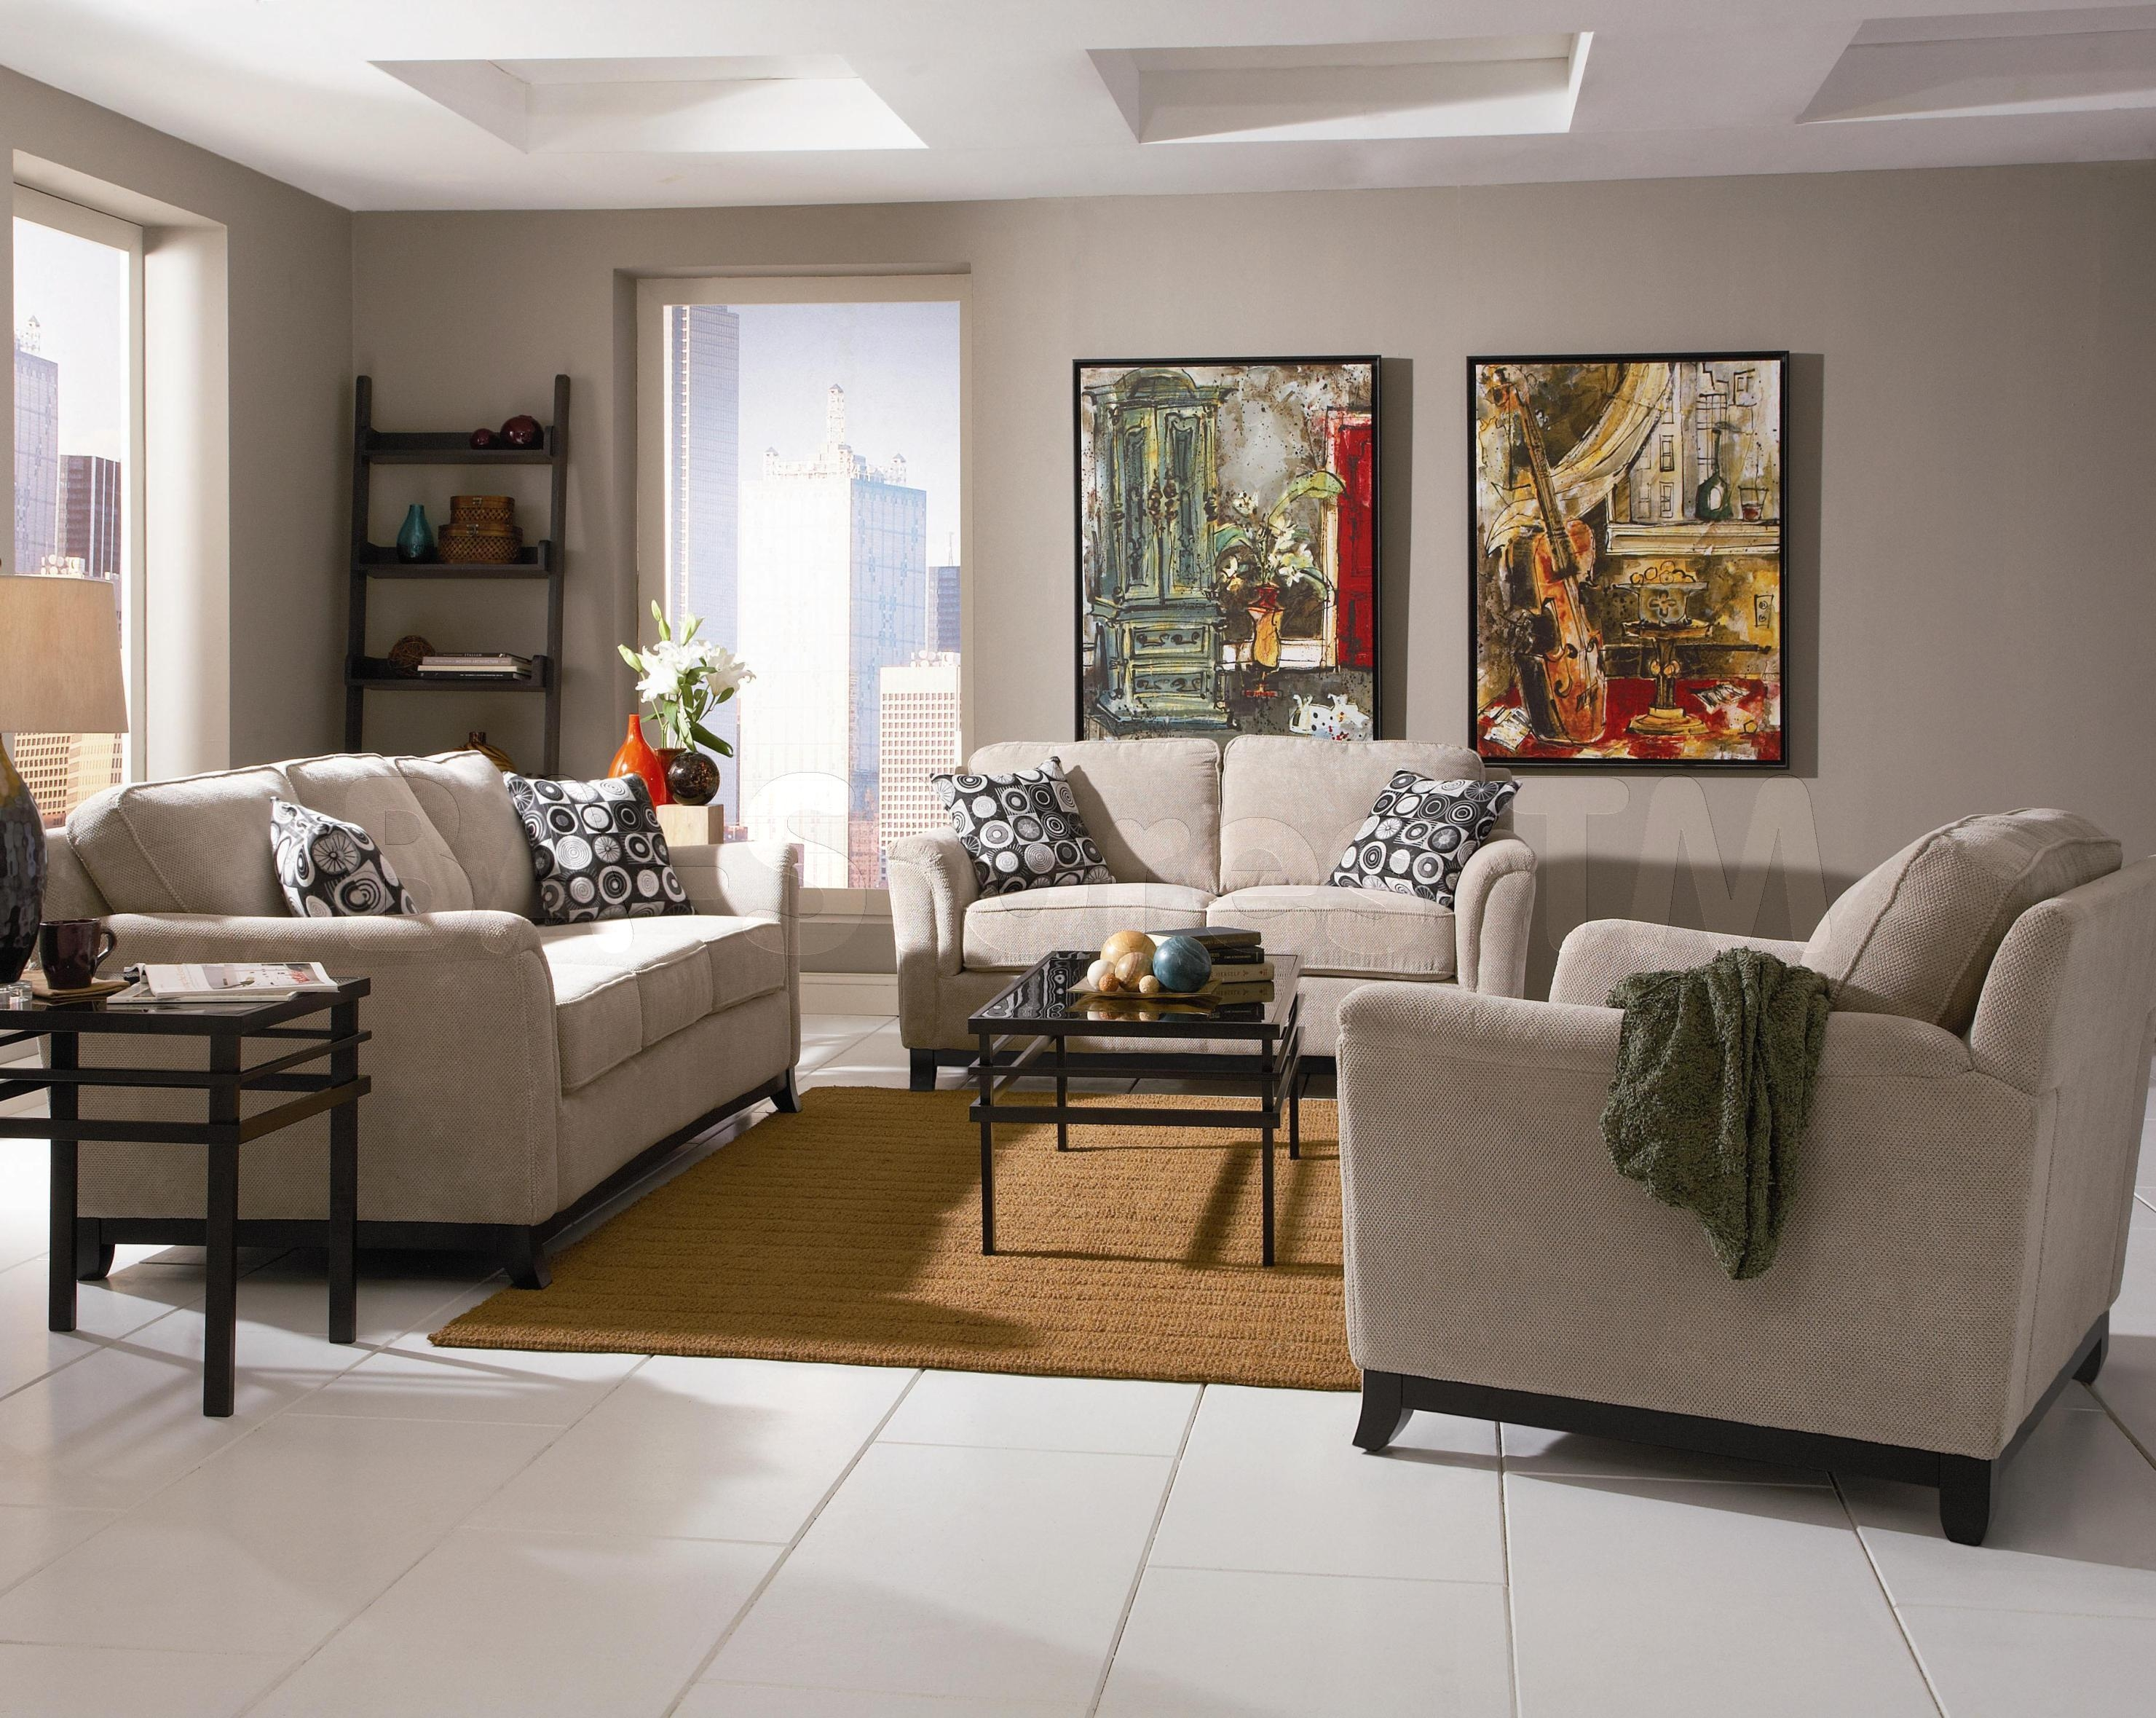 3 Sofas In Living Room Hereo Sofa With Regard To Sofa Loveseat And Chair Set (Image 1 of 15)